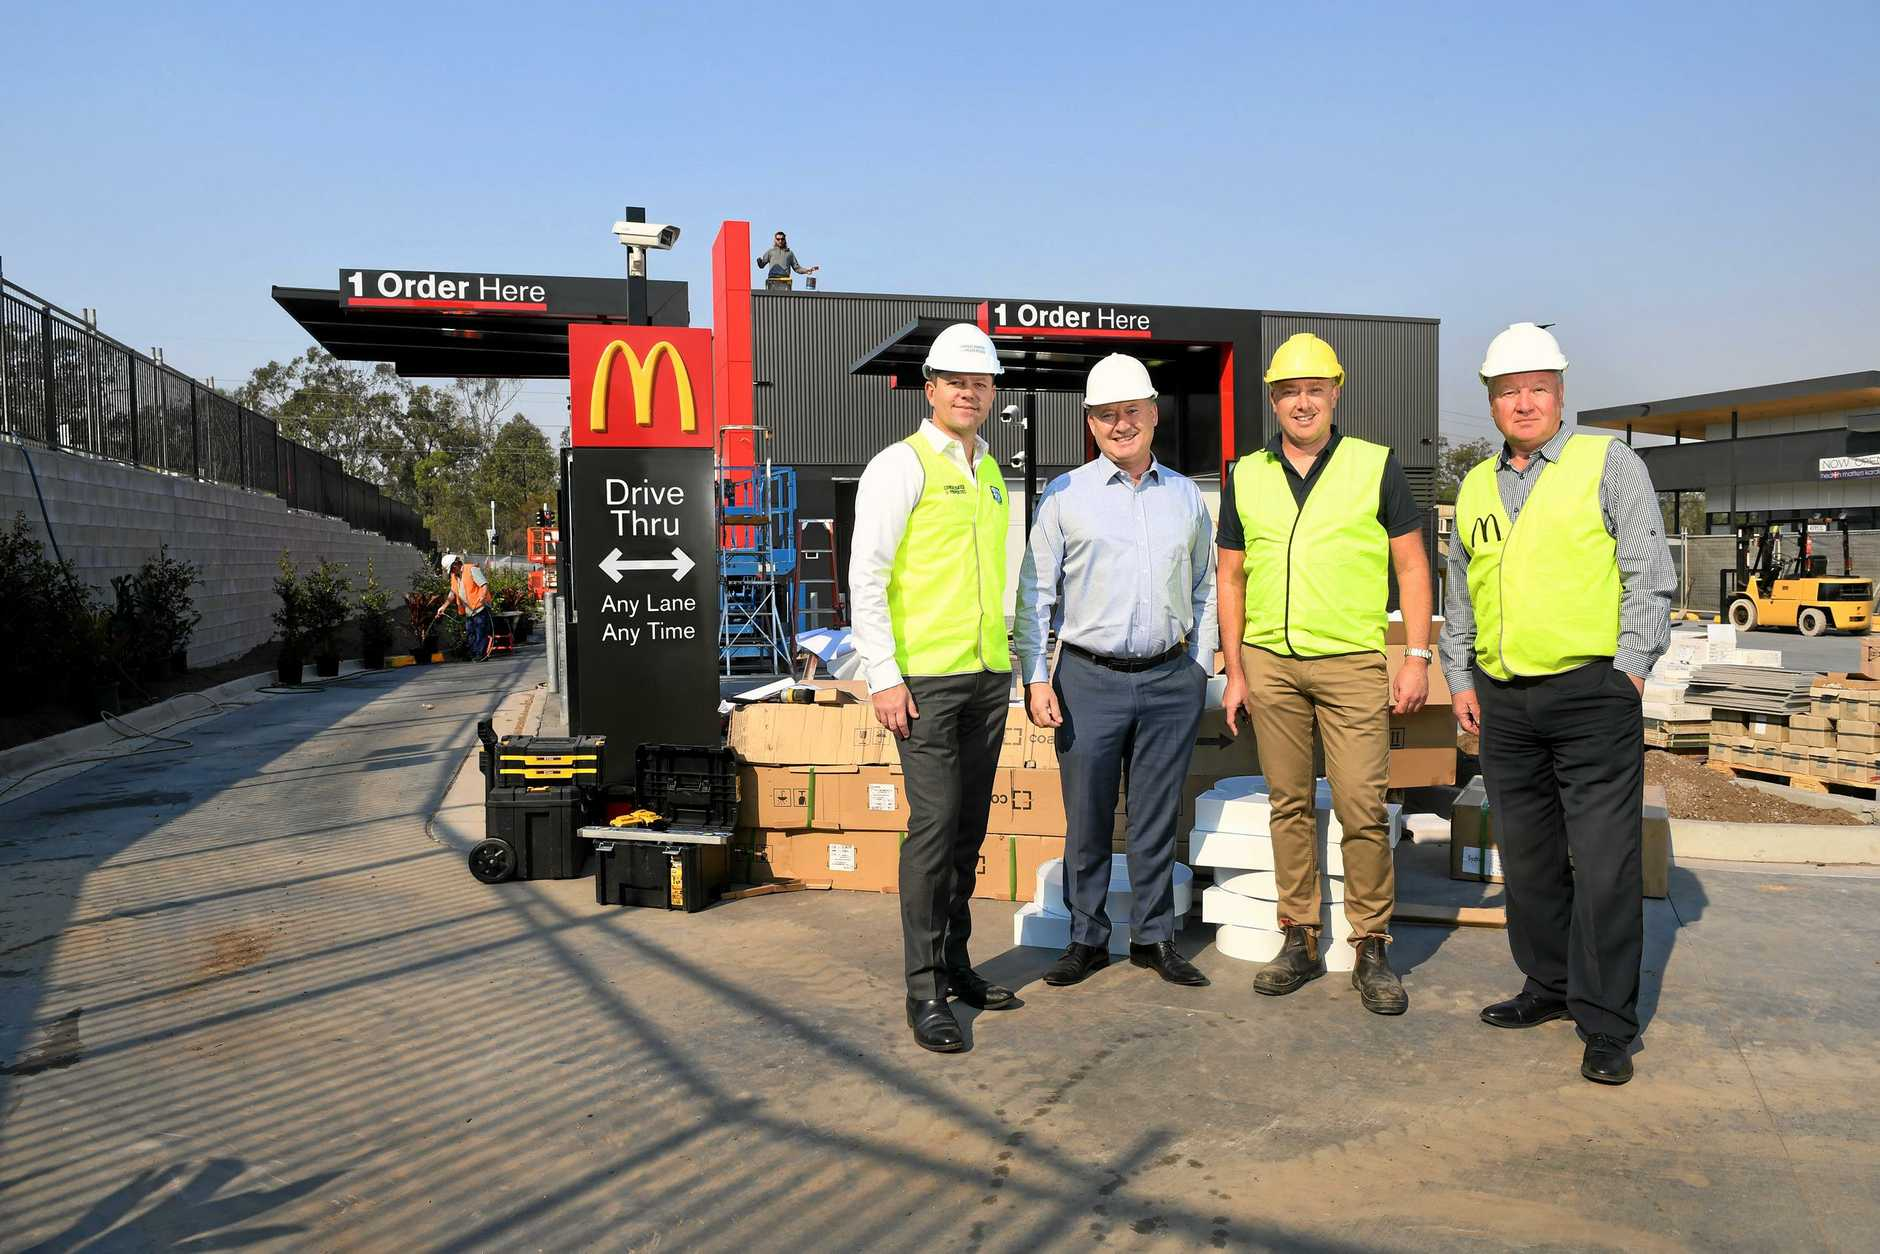 OPENING SOON: McDonald's at Karalee is set to open within the next two weeks. Consolidated Properties Group senior development manager Ben Finemore, Karalee McDonald's Licensee Mark McCormack, McDonald's Australia development manager of construction Paul Sanders and McDonald's Australia development manager Chris Hollis.